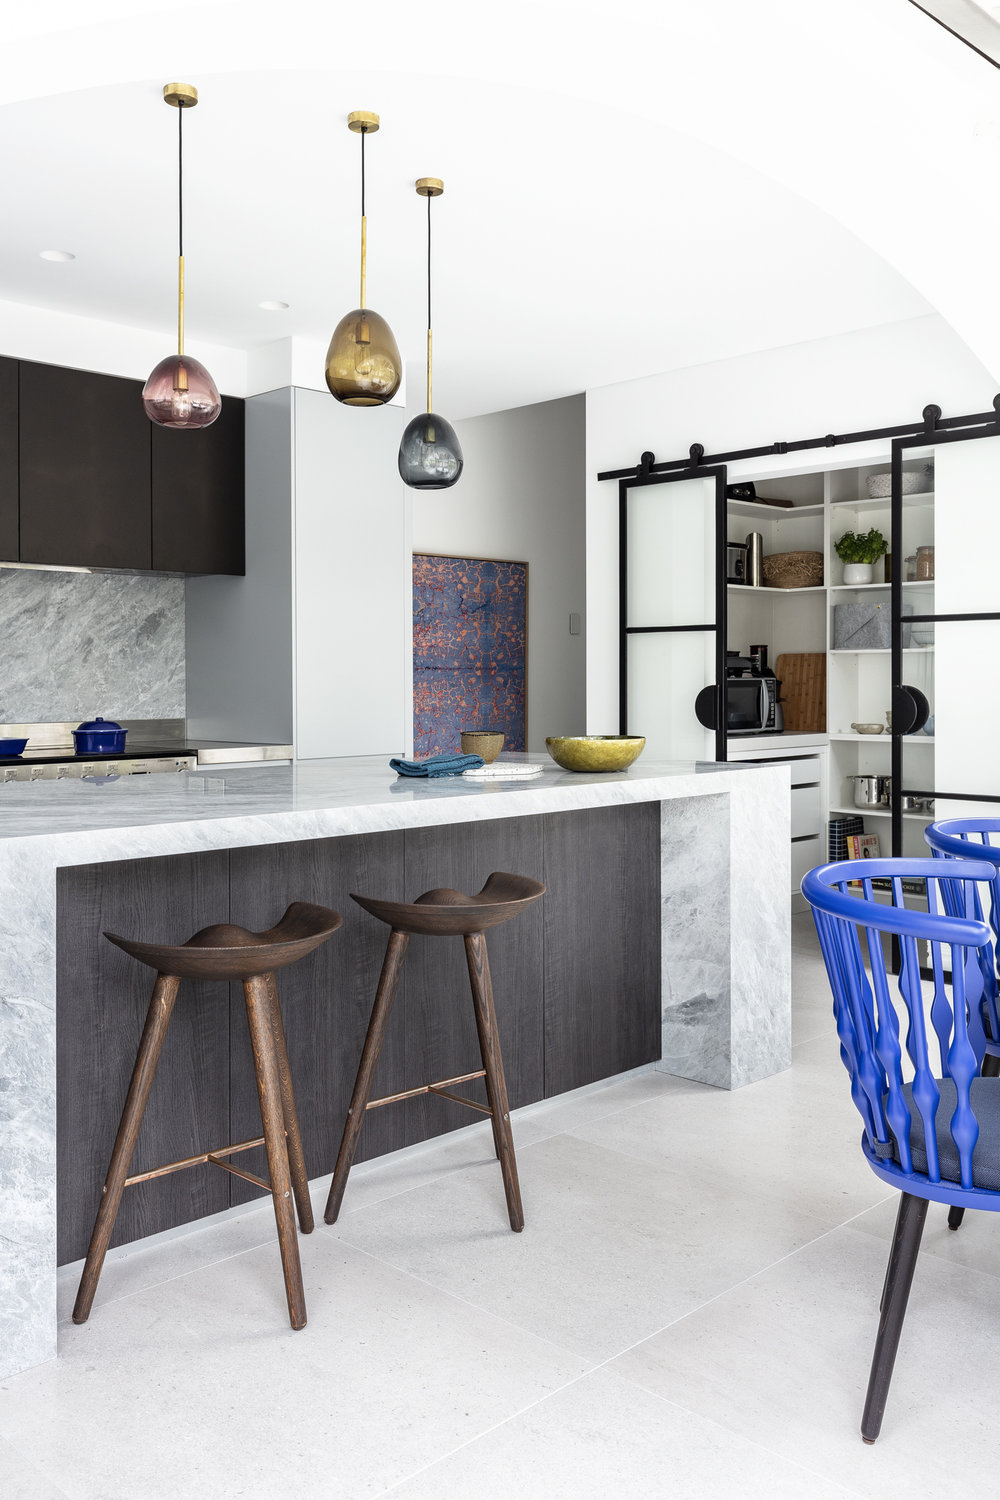 Sydney-North-Shore-Kitchen-Pendant-Lights-Feature-Blue-Armchairs.jpg